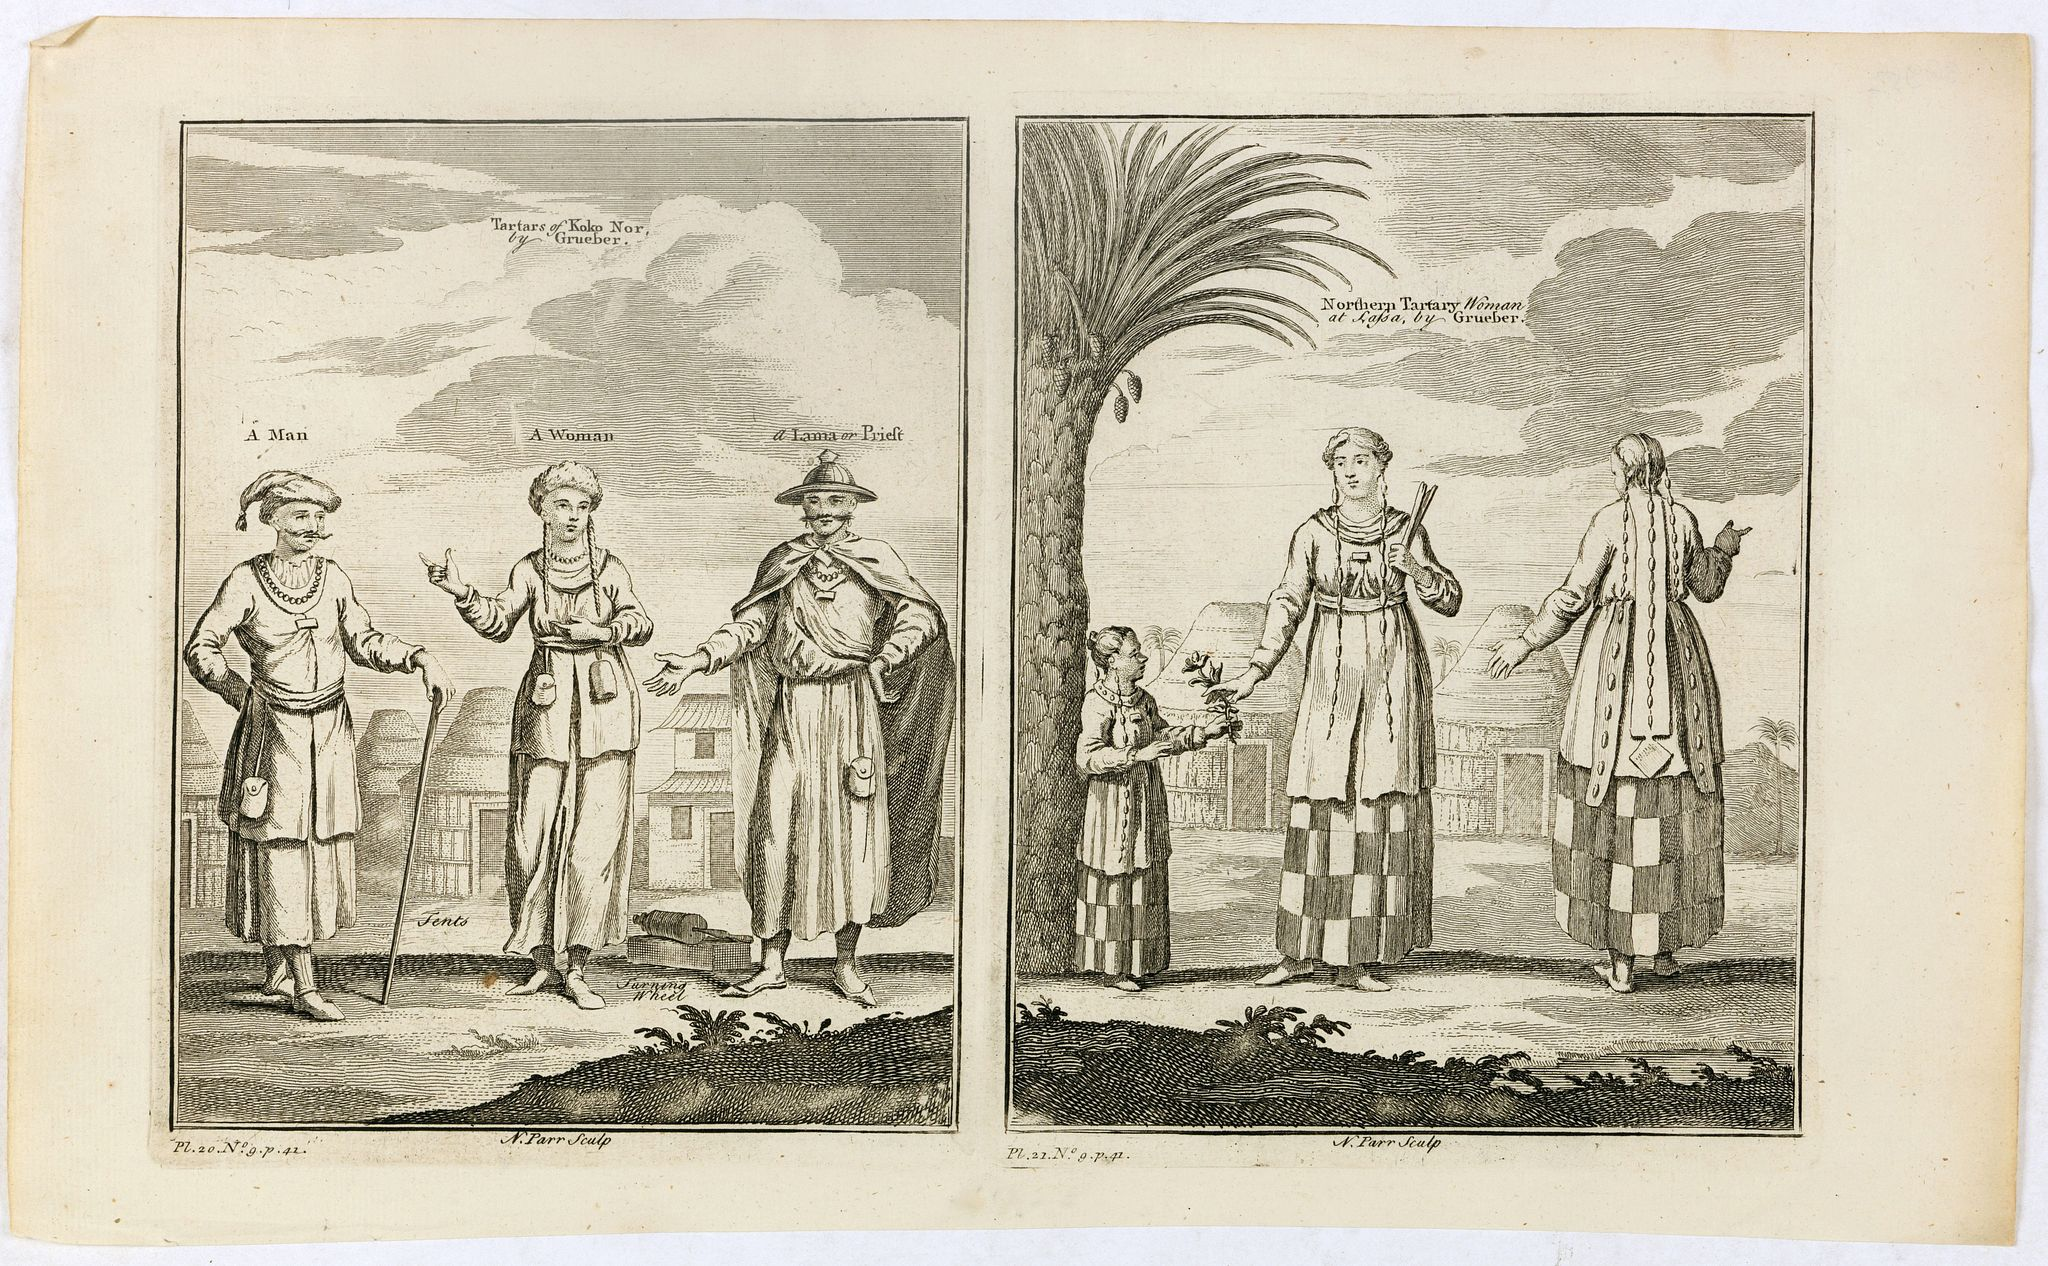 PARR, N. -  Tartars of Koko Nor [ together with] Nothern Tartary Woman at Lafsa.